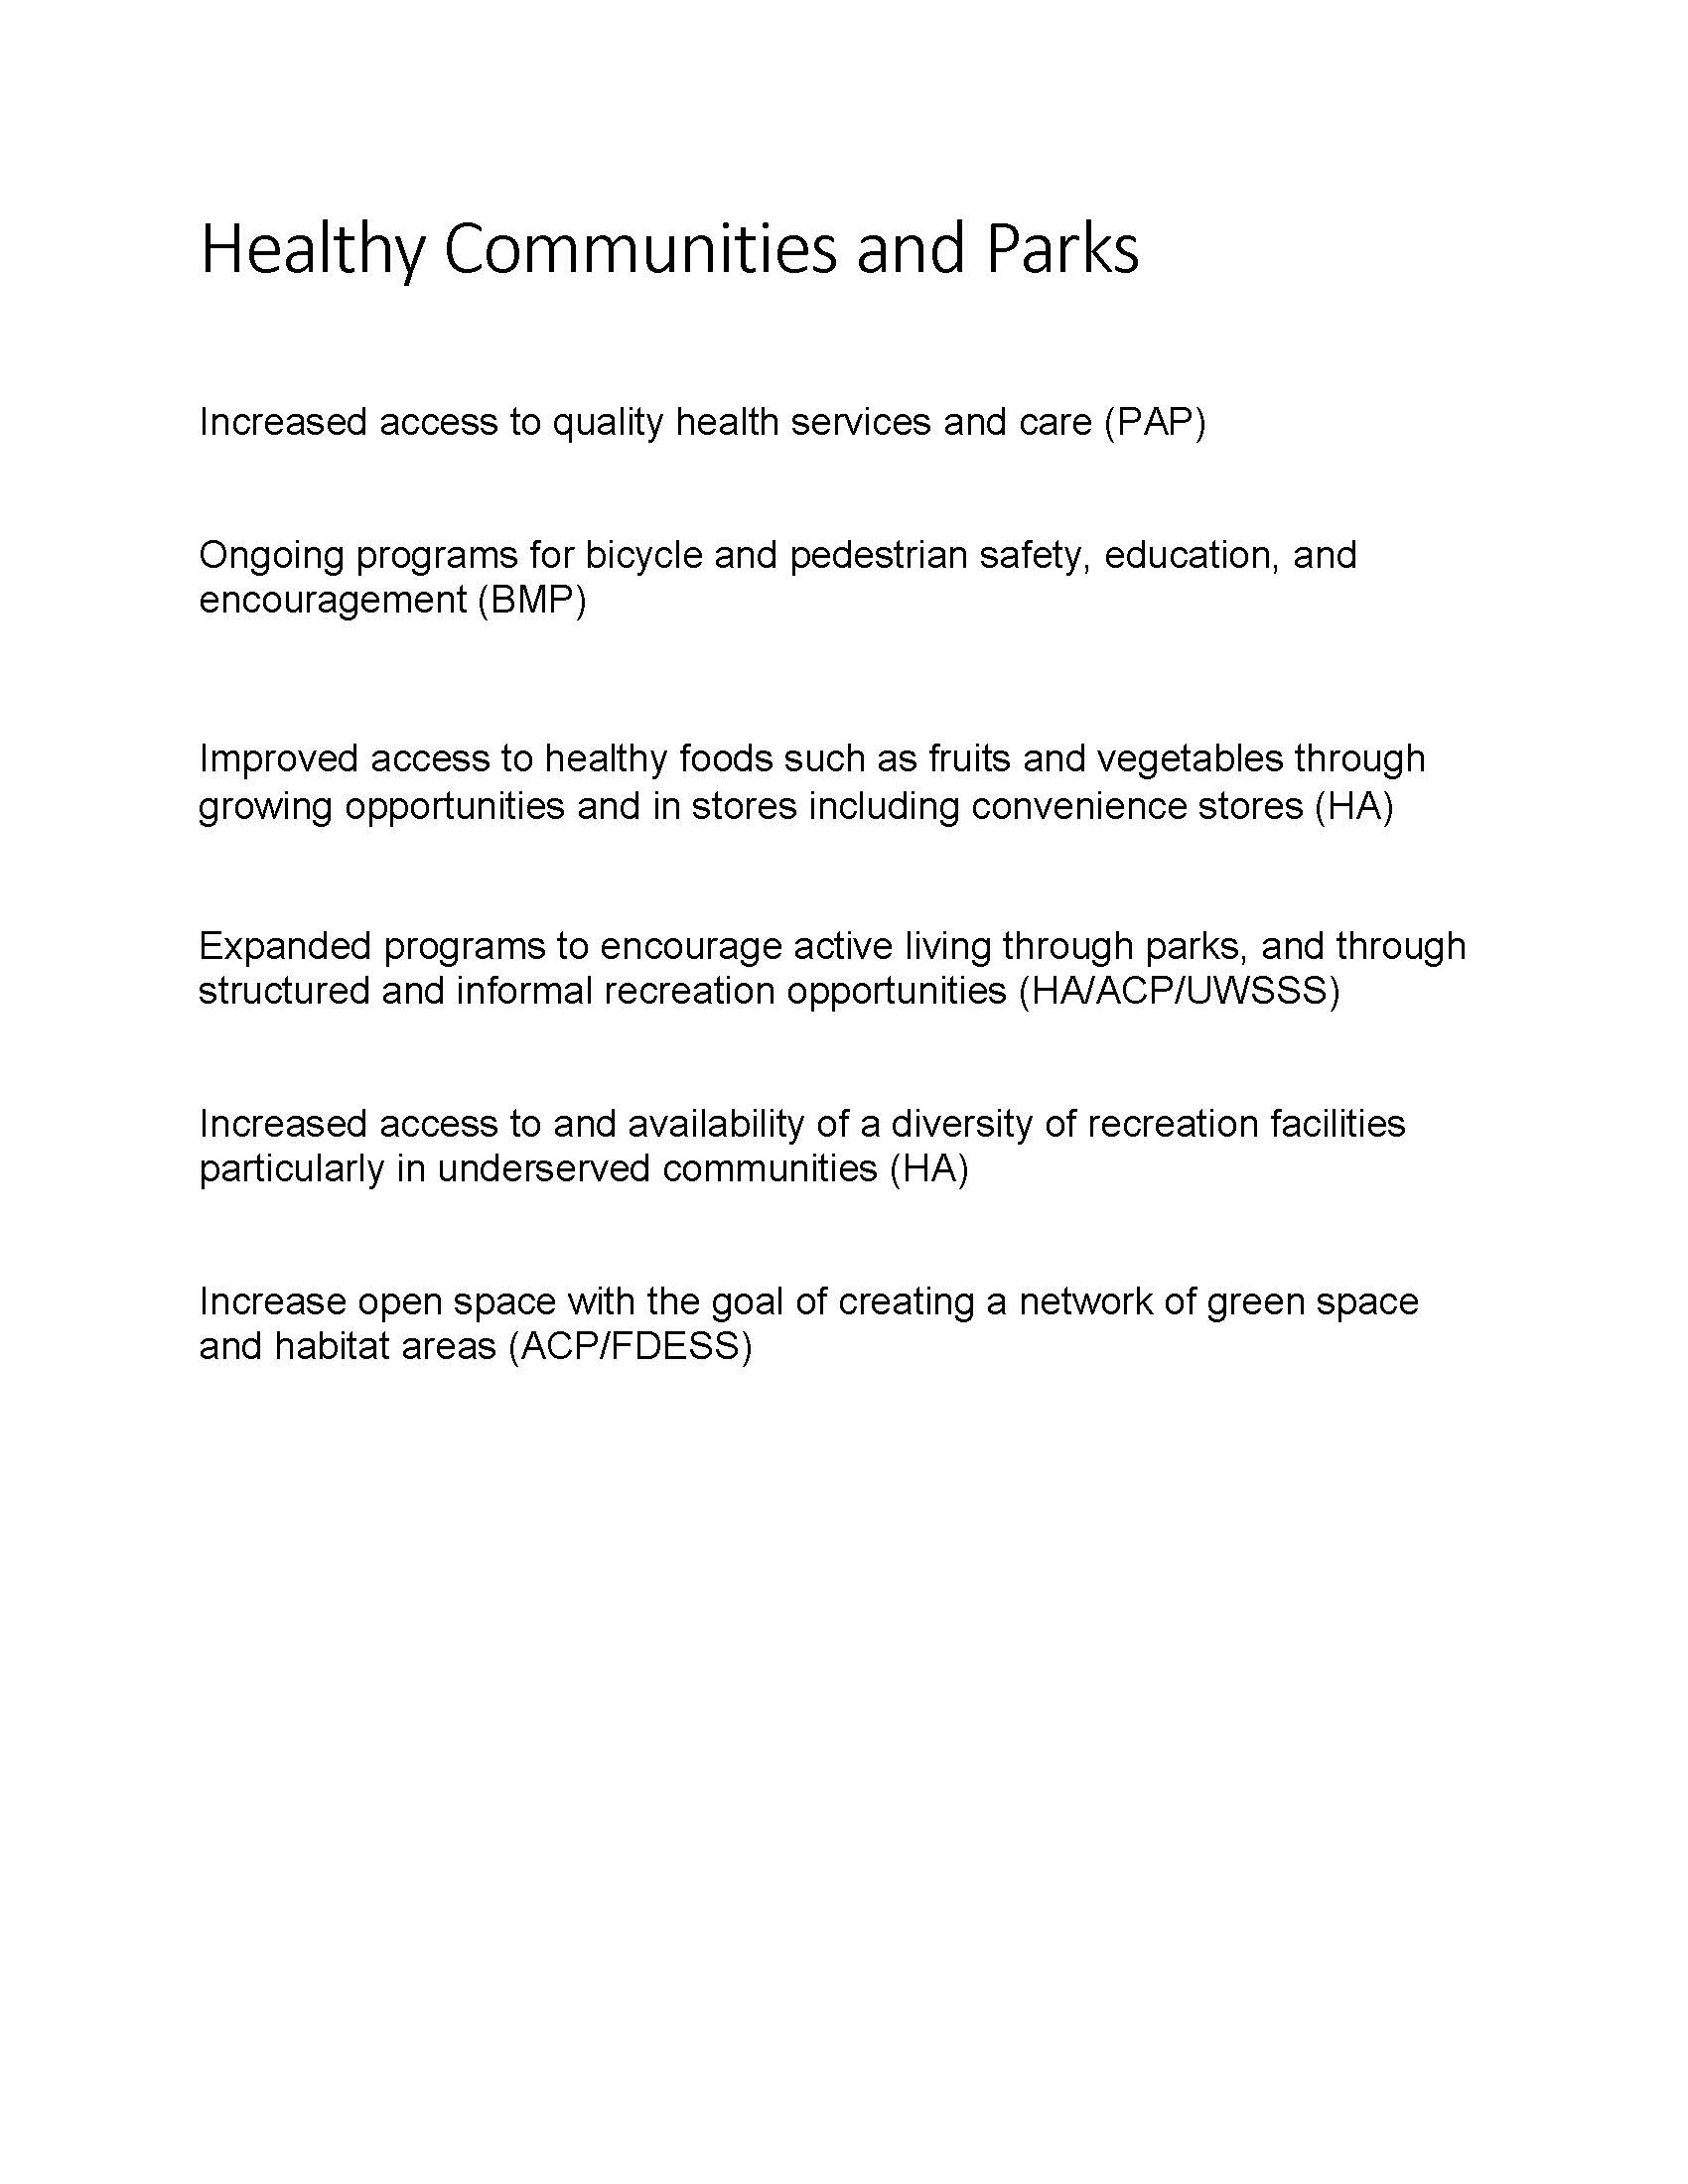 Healthy Communities and Parks Goals